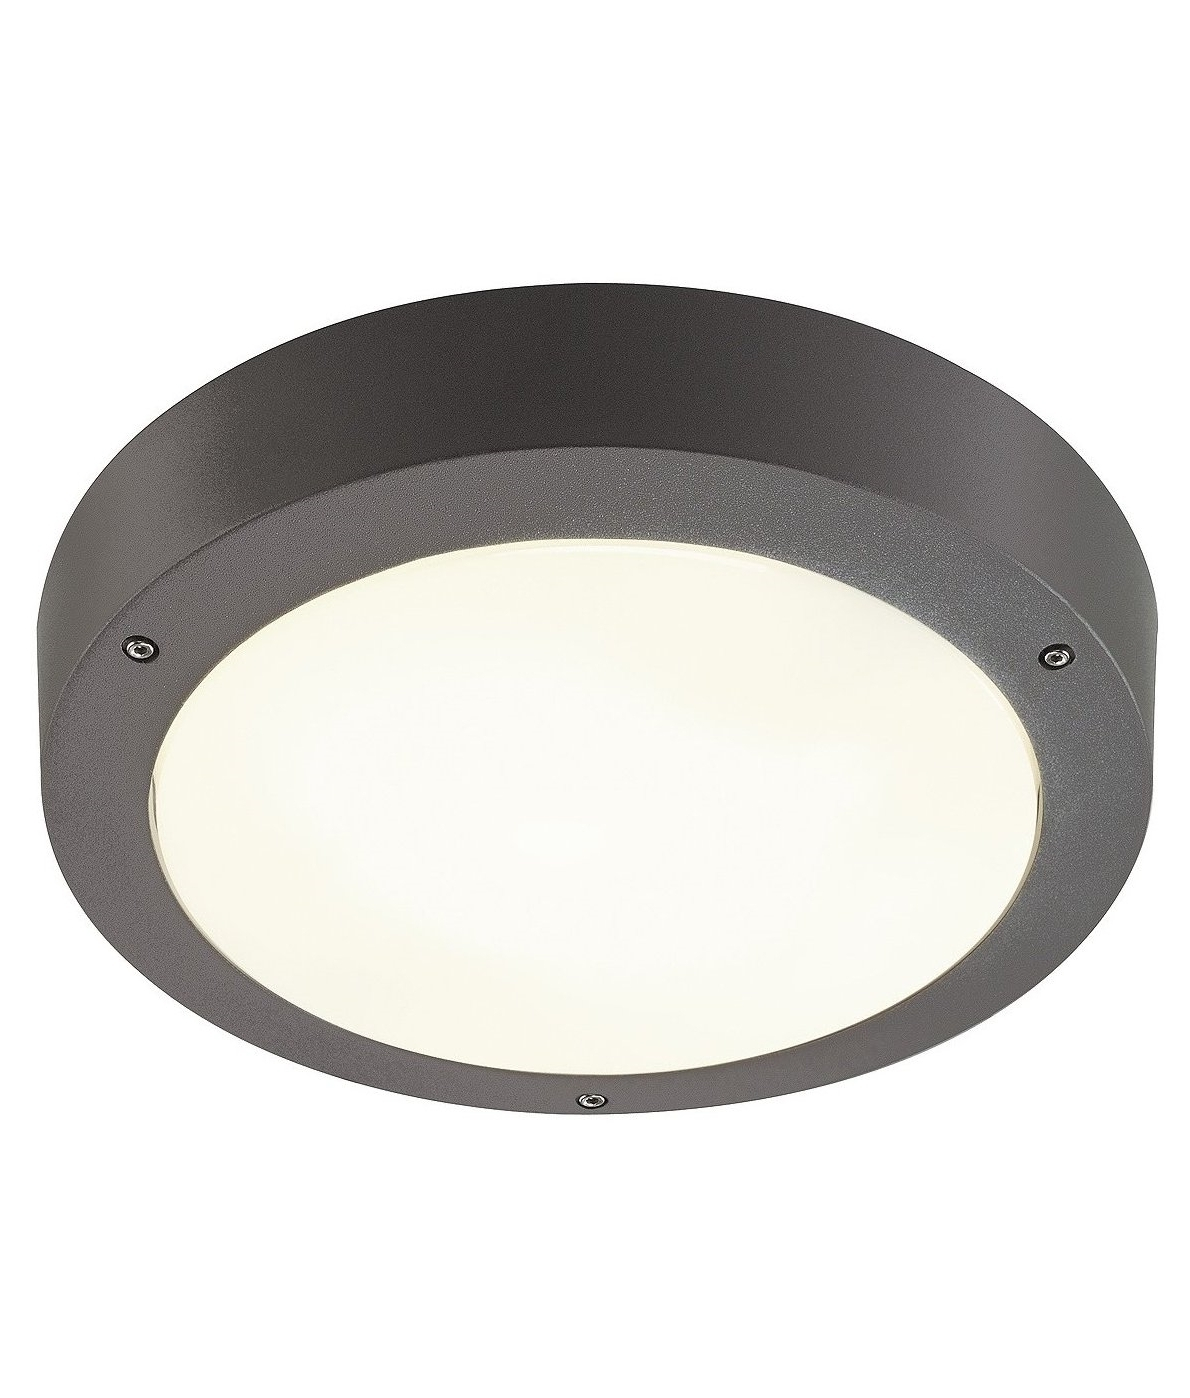 Outdoor Ceiling Sensor Lights Intended For Current Outdoor Ceiling Sensor Light – Outdoor Designs (View 10 of 20)